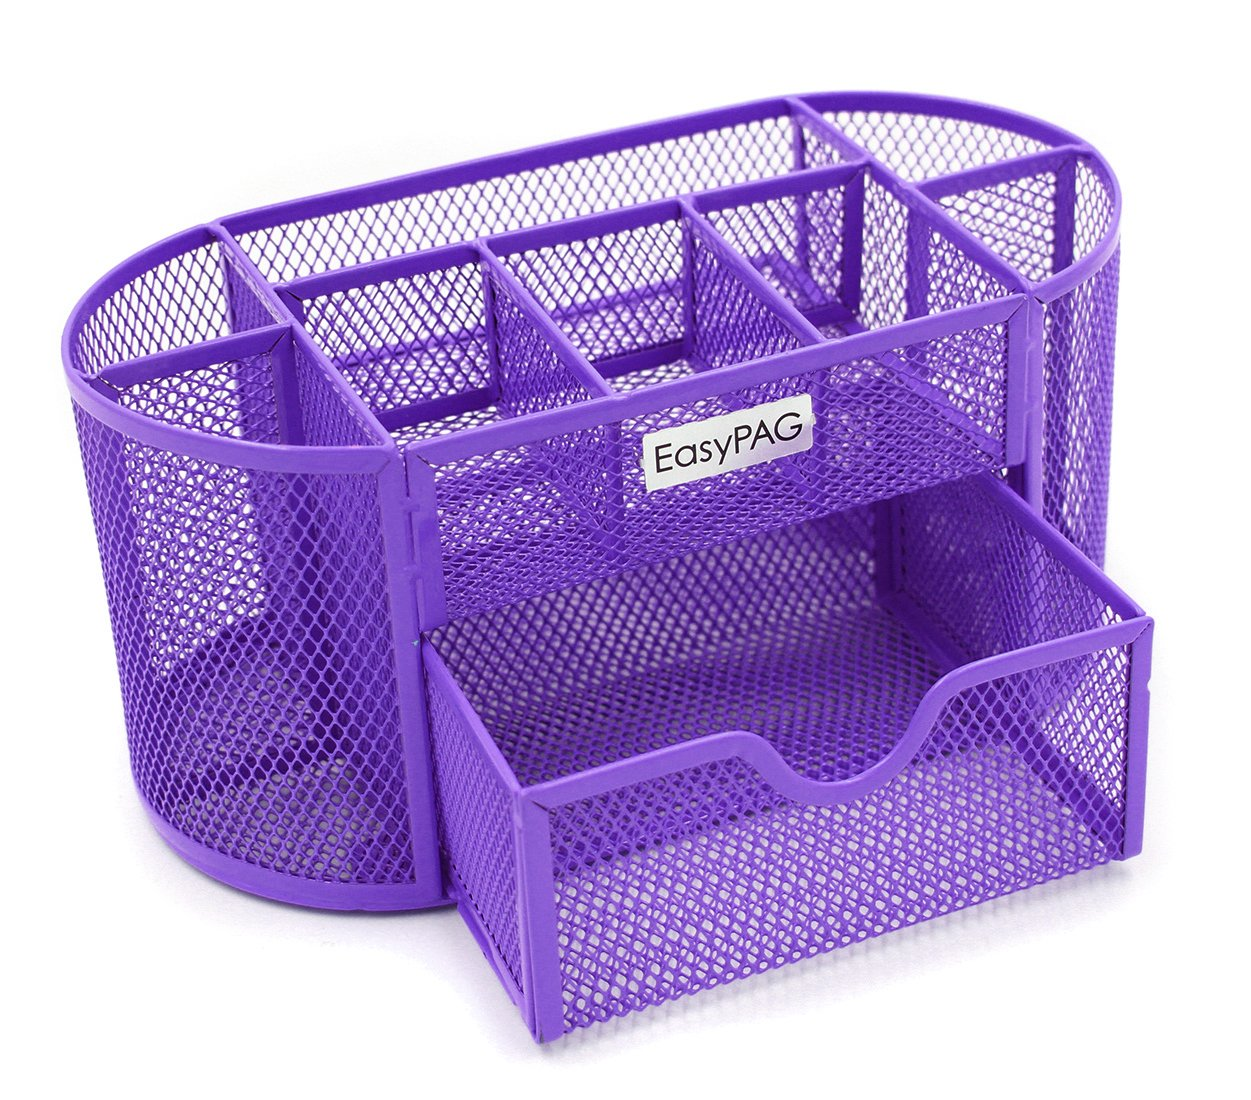 EasyPAG Desk Organizer 9 Components Mesh Office Desktop Supplies Caddy with Drawer,Purple